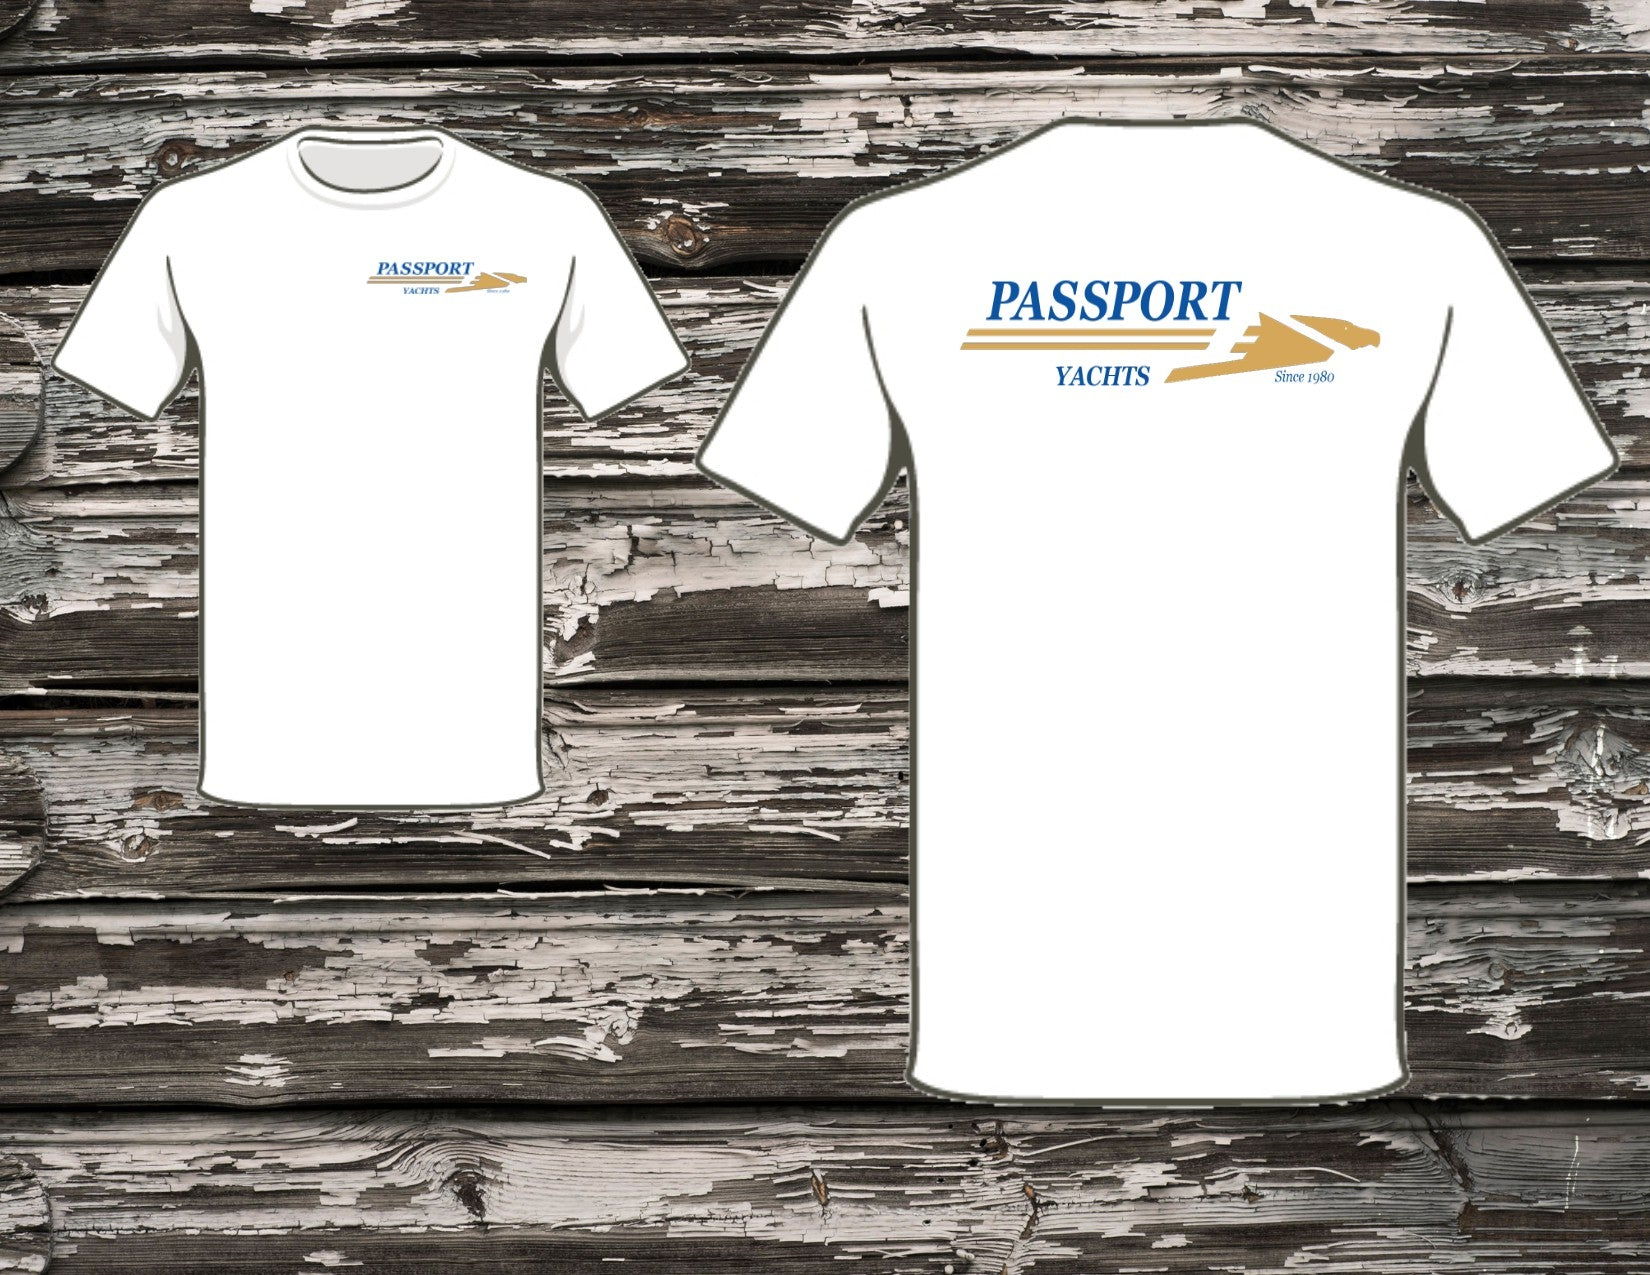 Passport Yachts T-Shirt